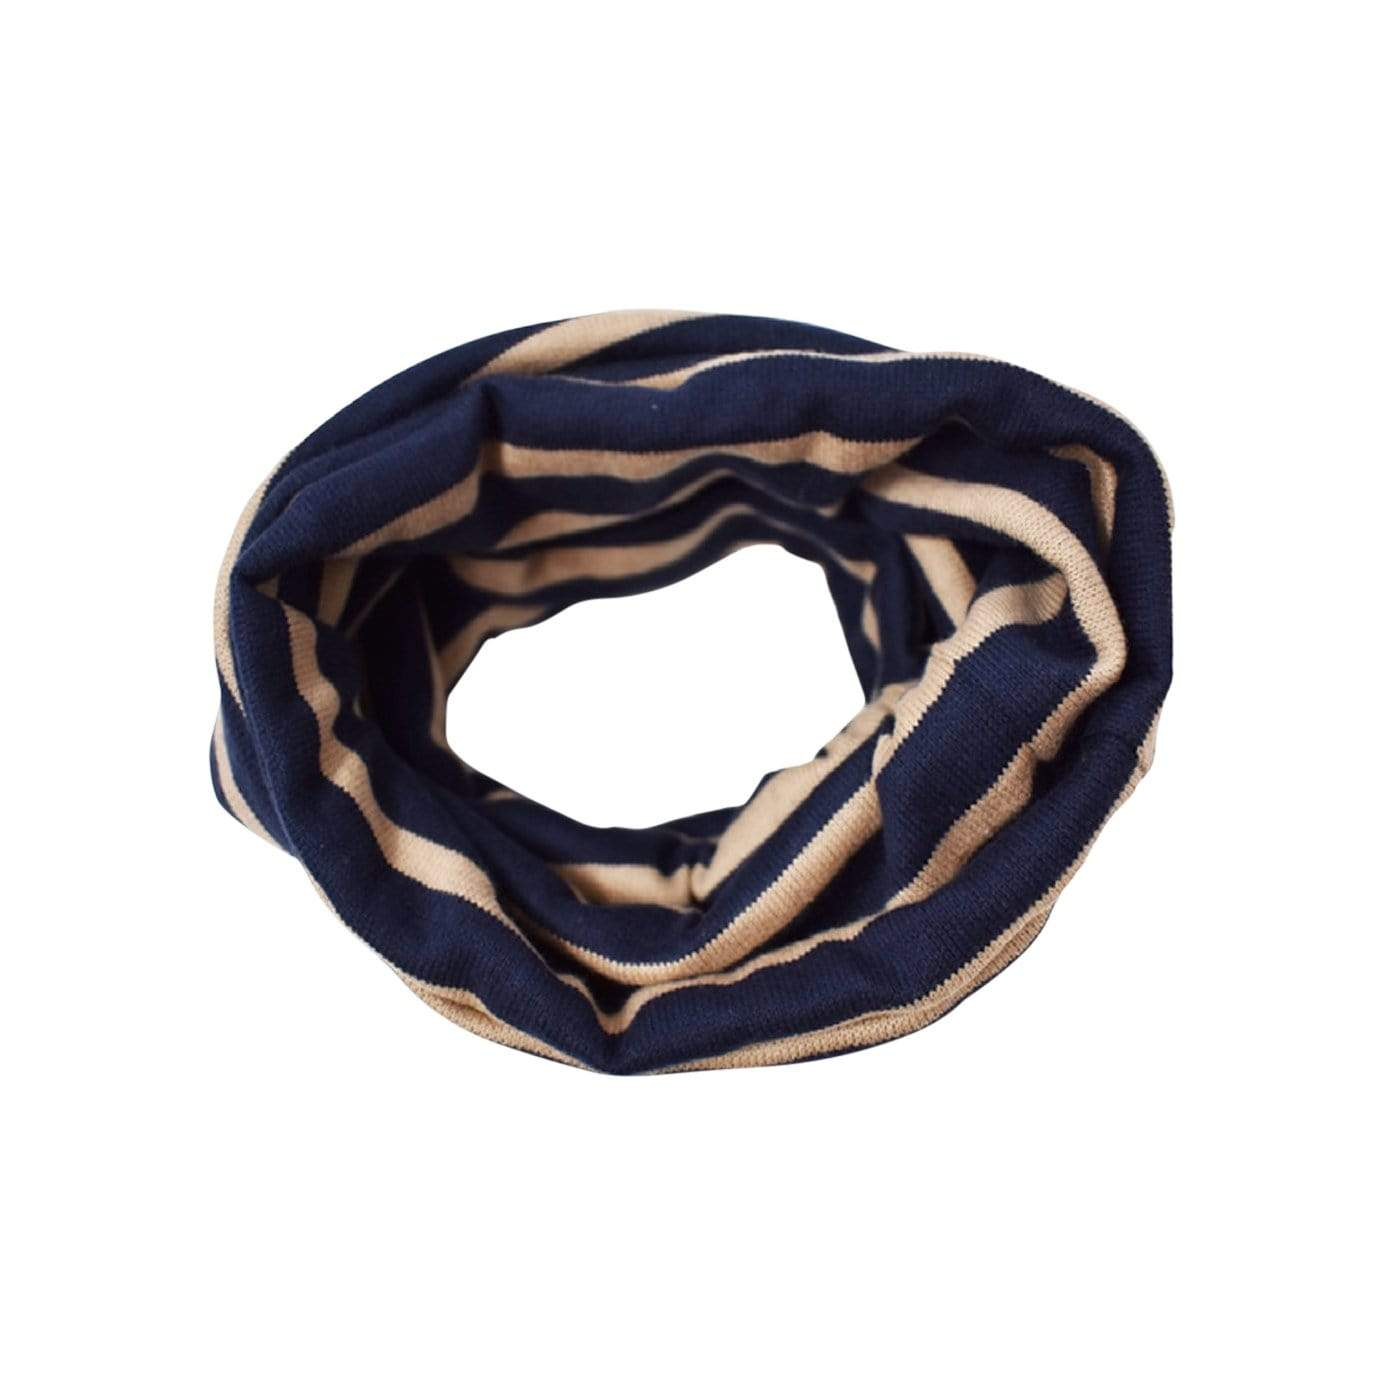 MODERNBEAST Bandanas + Bow Ties Navy + Tan / SM Snood